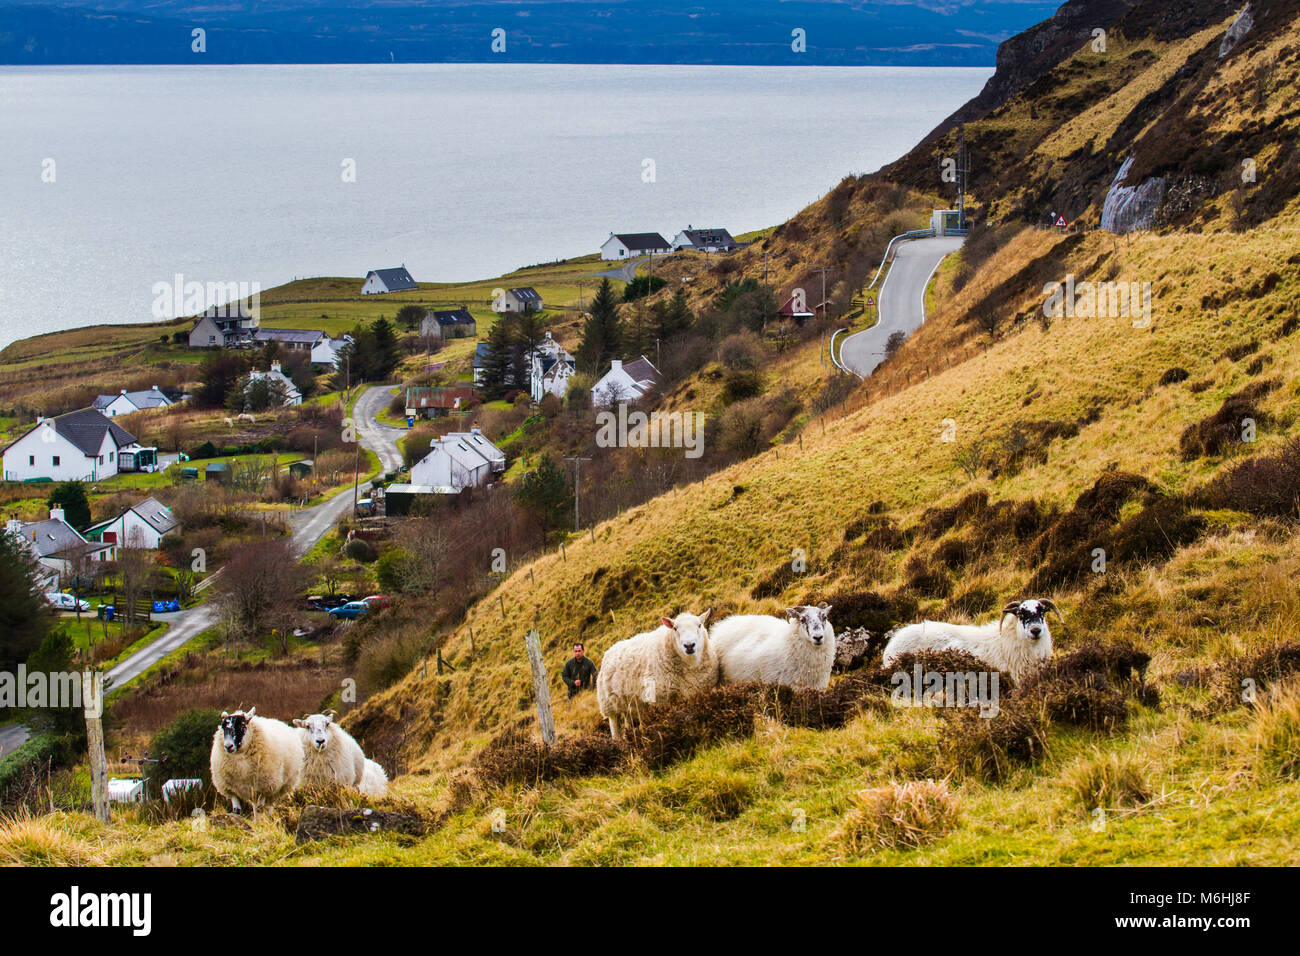 A shepherd and his sheep in the hills of the Isle of Skye. - Stock Image